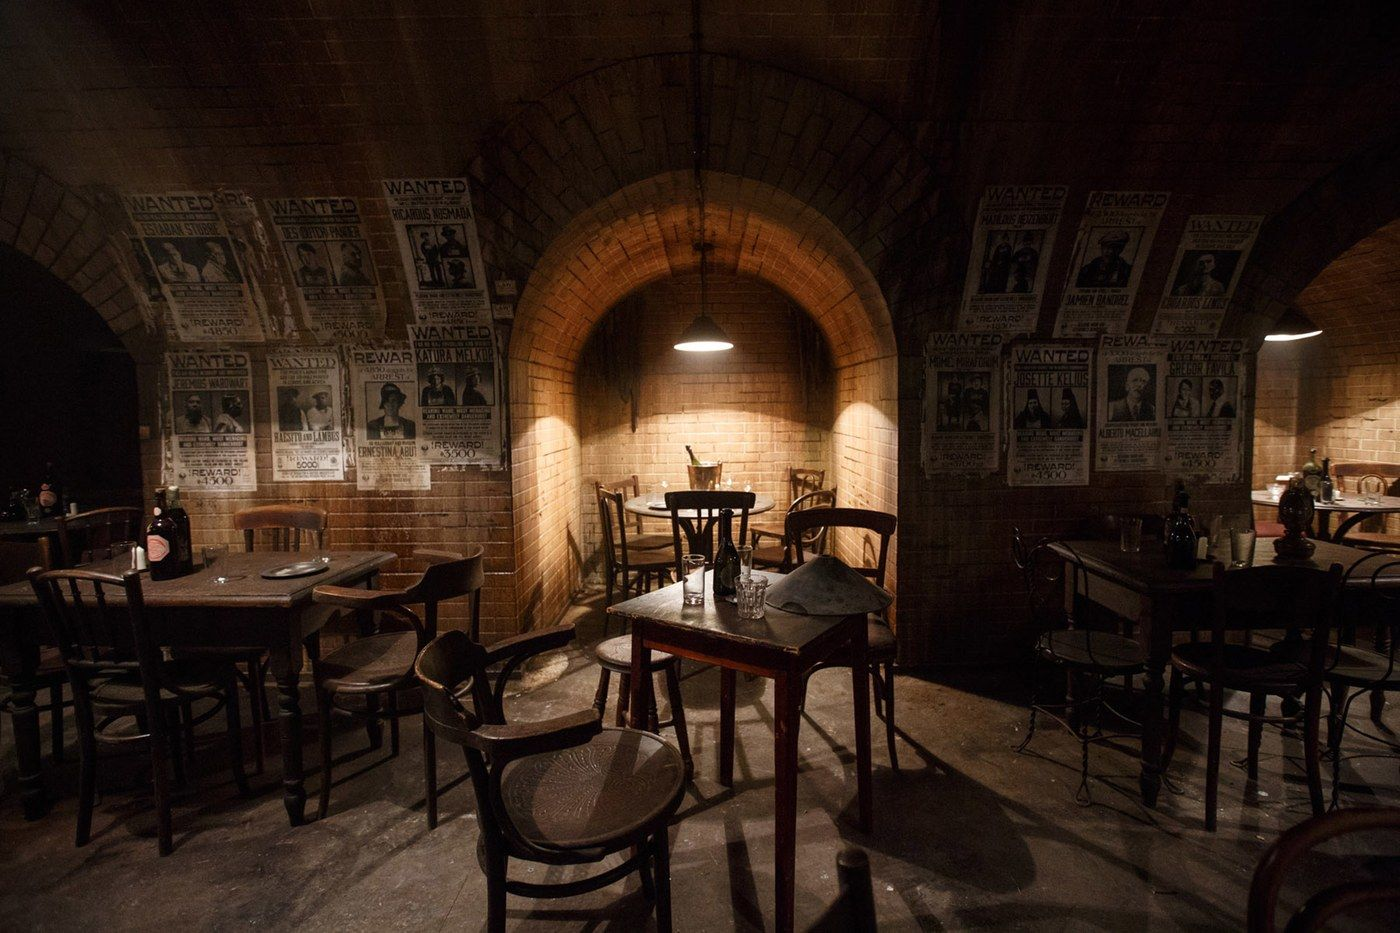 The Blind Pig, Fantastic Beasts | Harry Potter Production Design ...